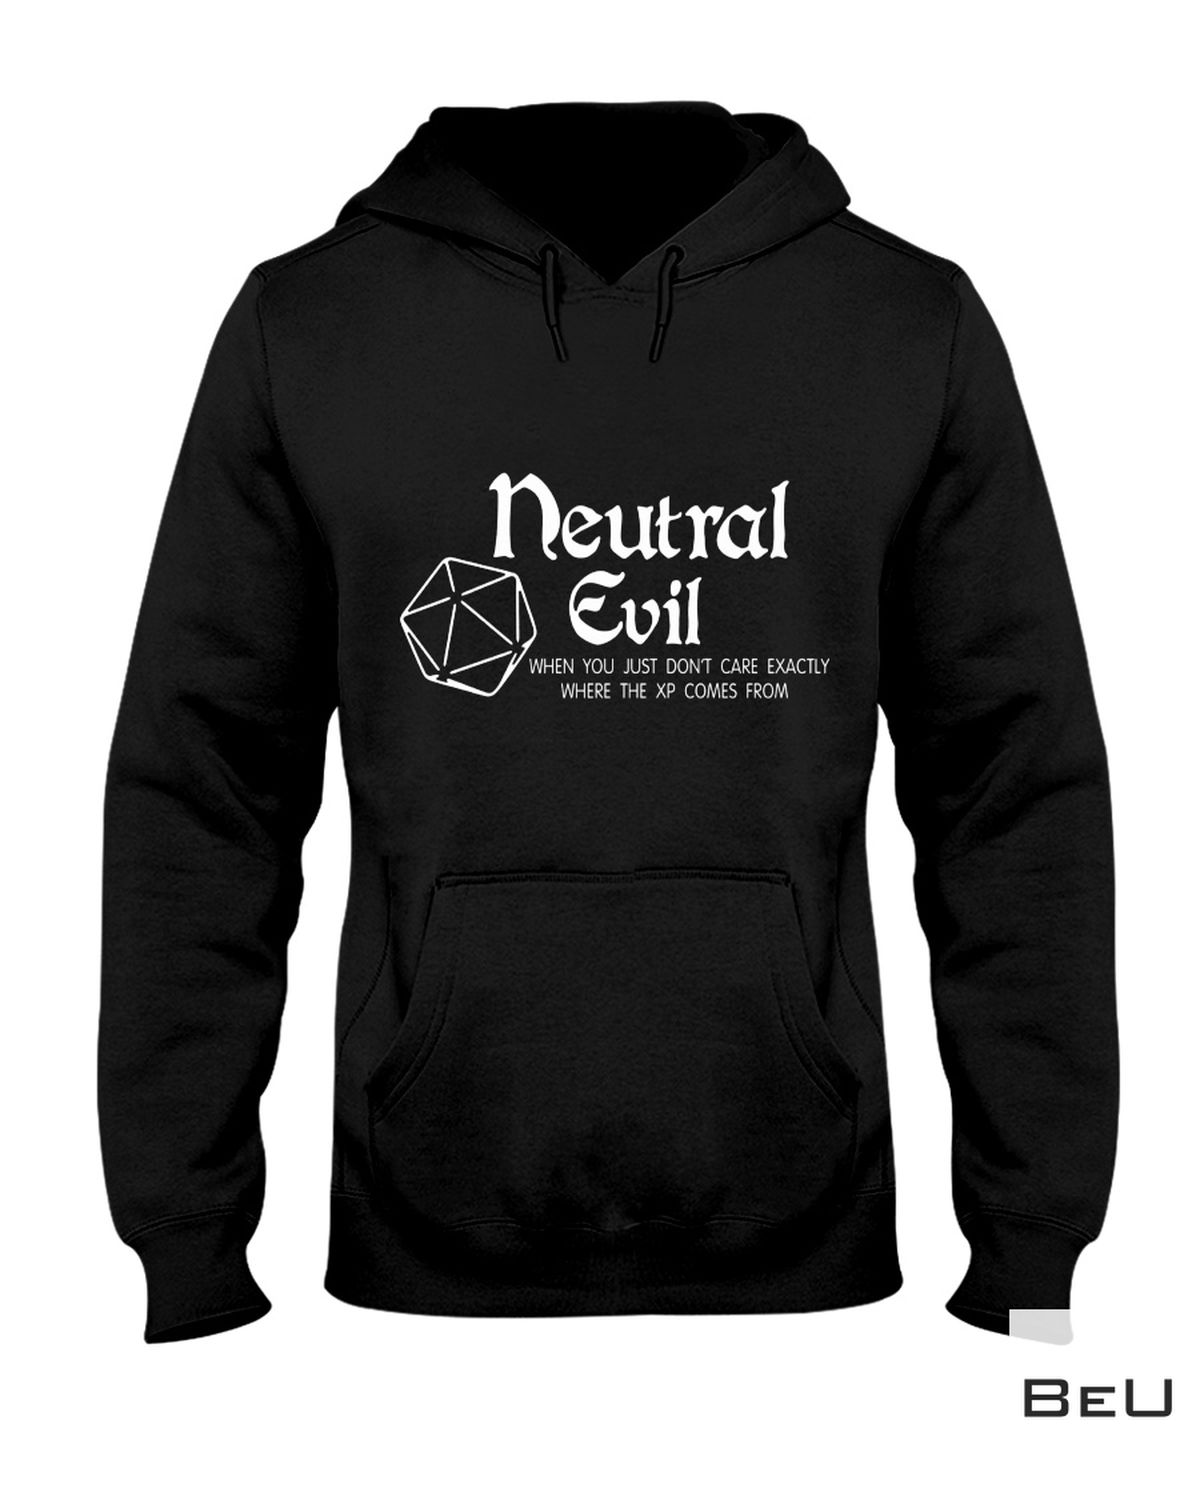 Neutral Evil -when You Just Don't Care Exactly Where The Xp Comes From Shirt a